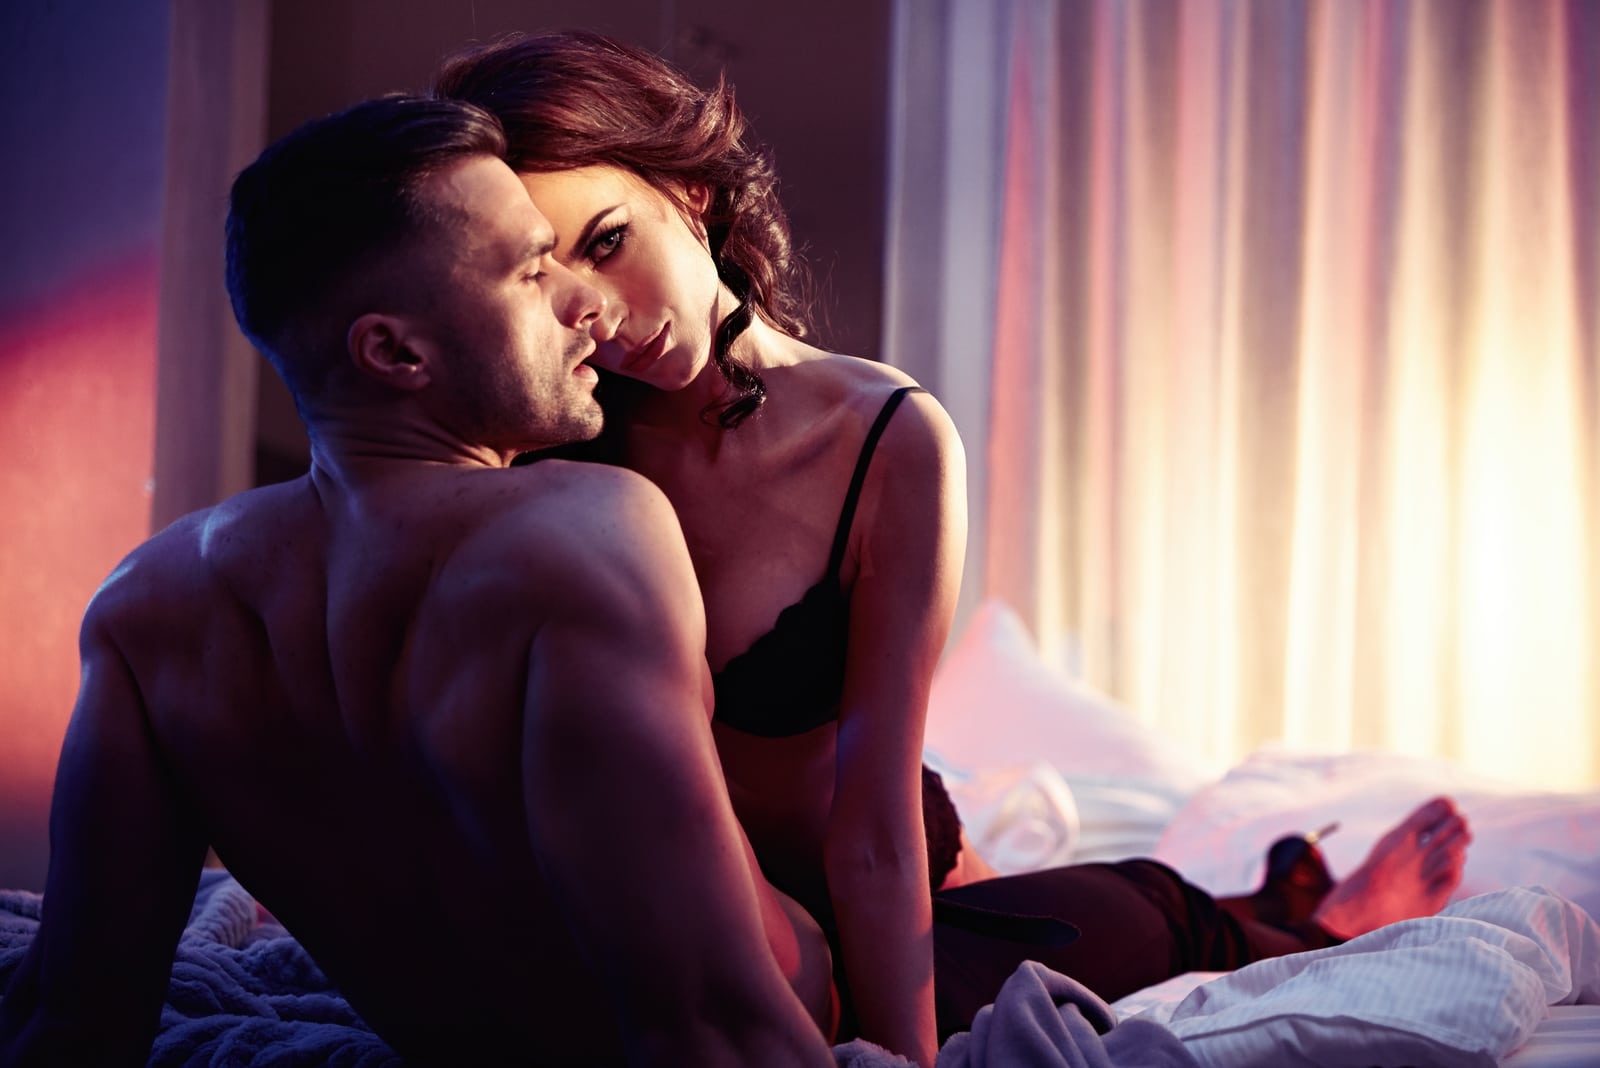 15 Clear Signs He Is Making Love To You (And It's Not Just Sex)